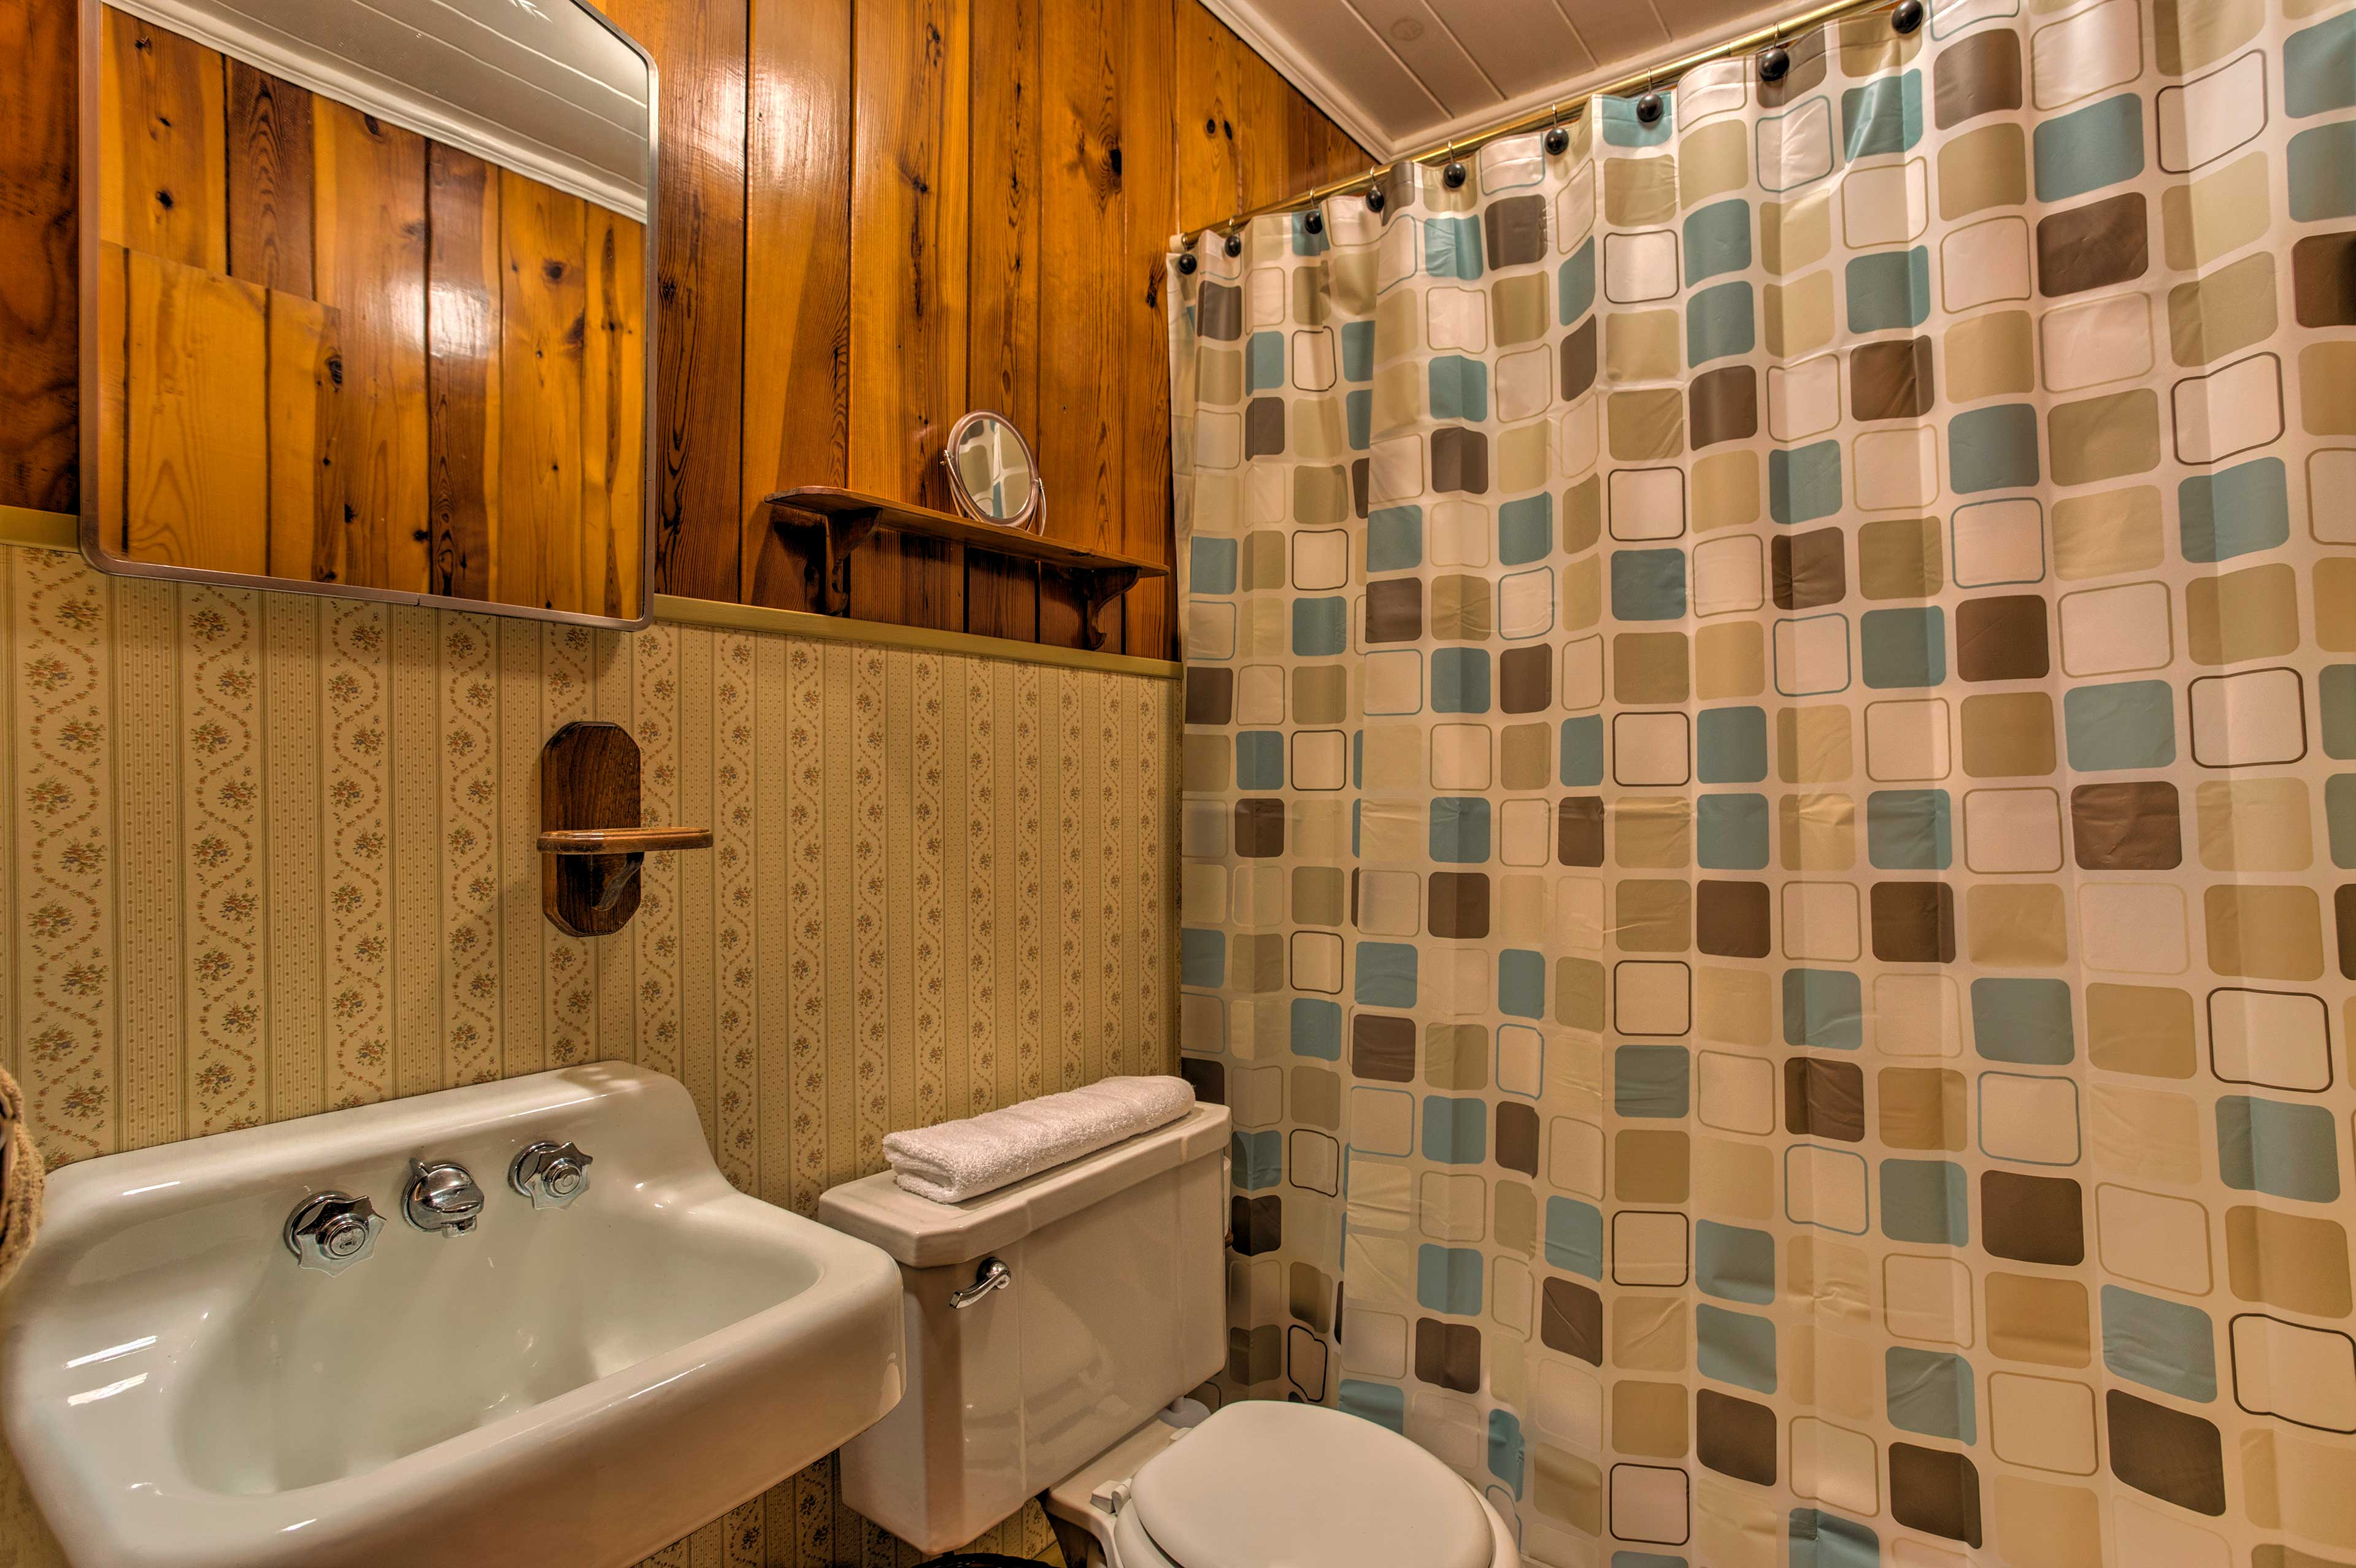 Utilize the shower/tub combo featured in the second full bathroom.